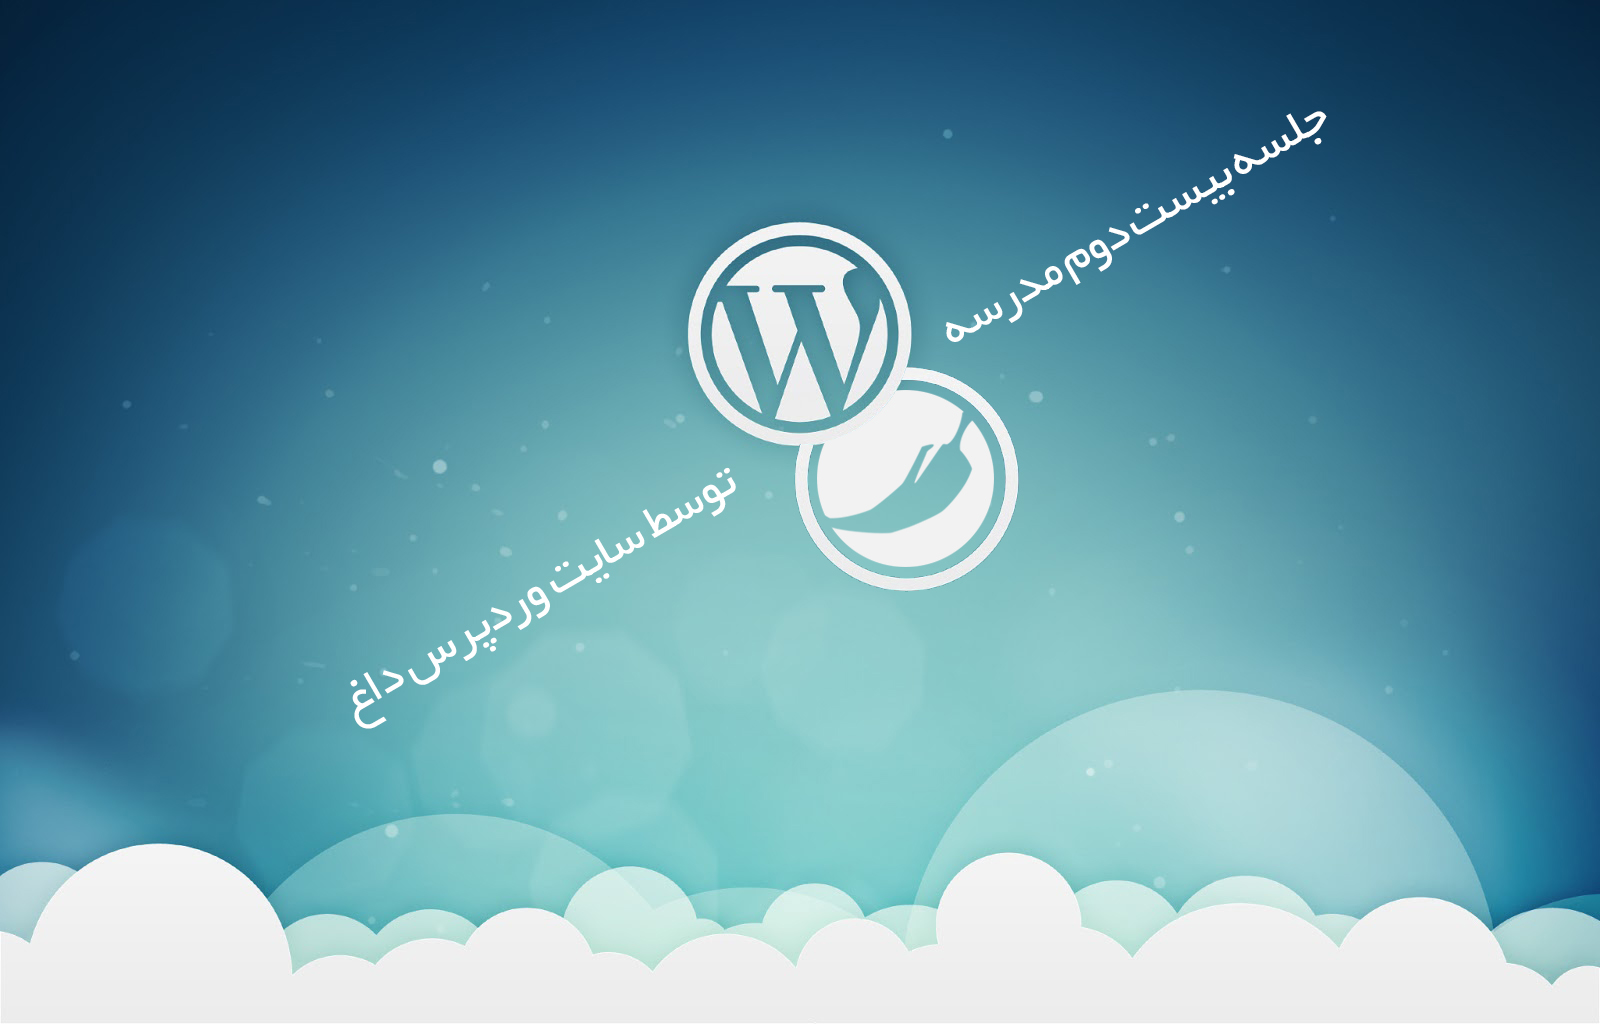 school-wordpress-redwp-22